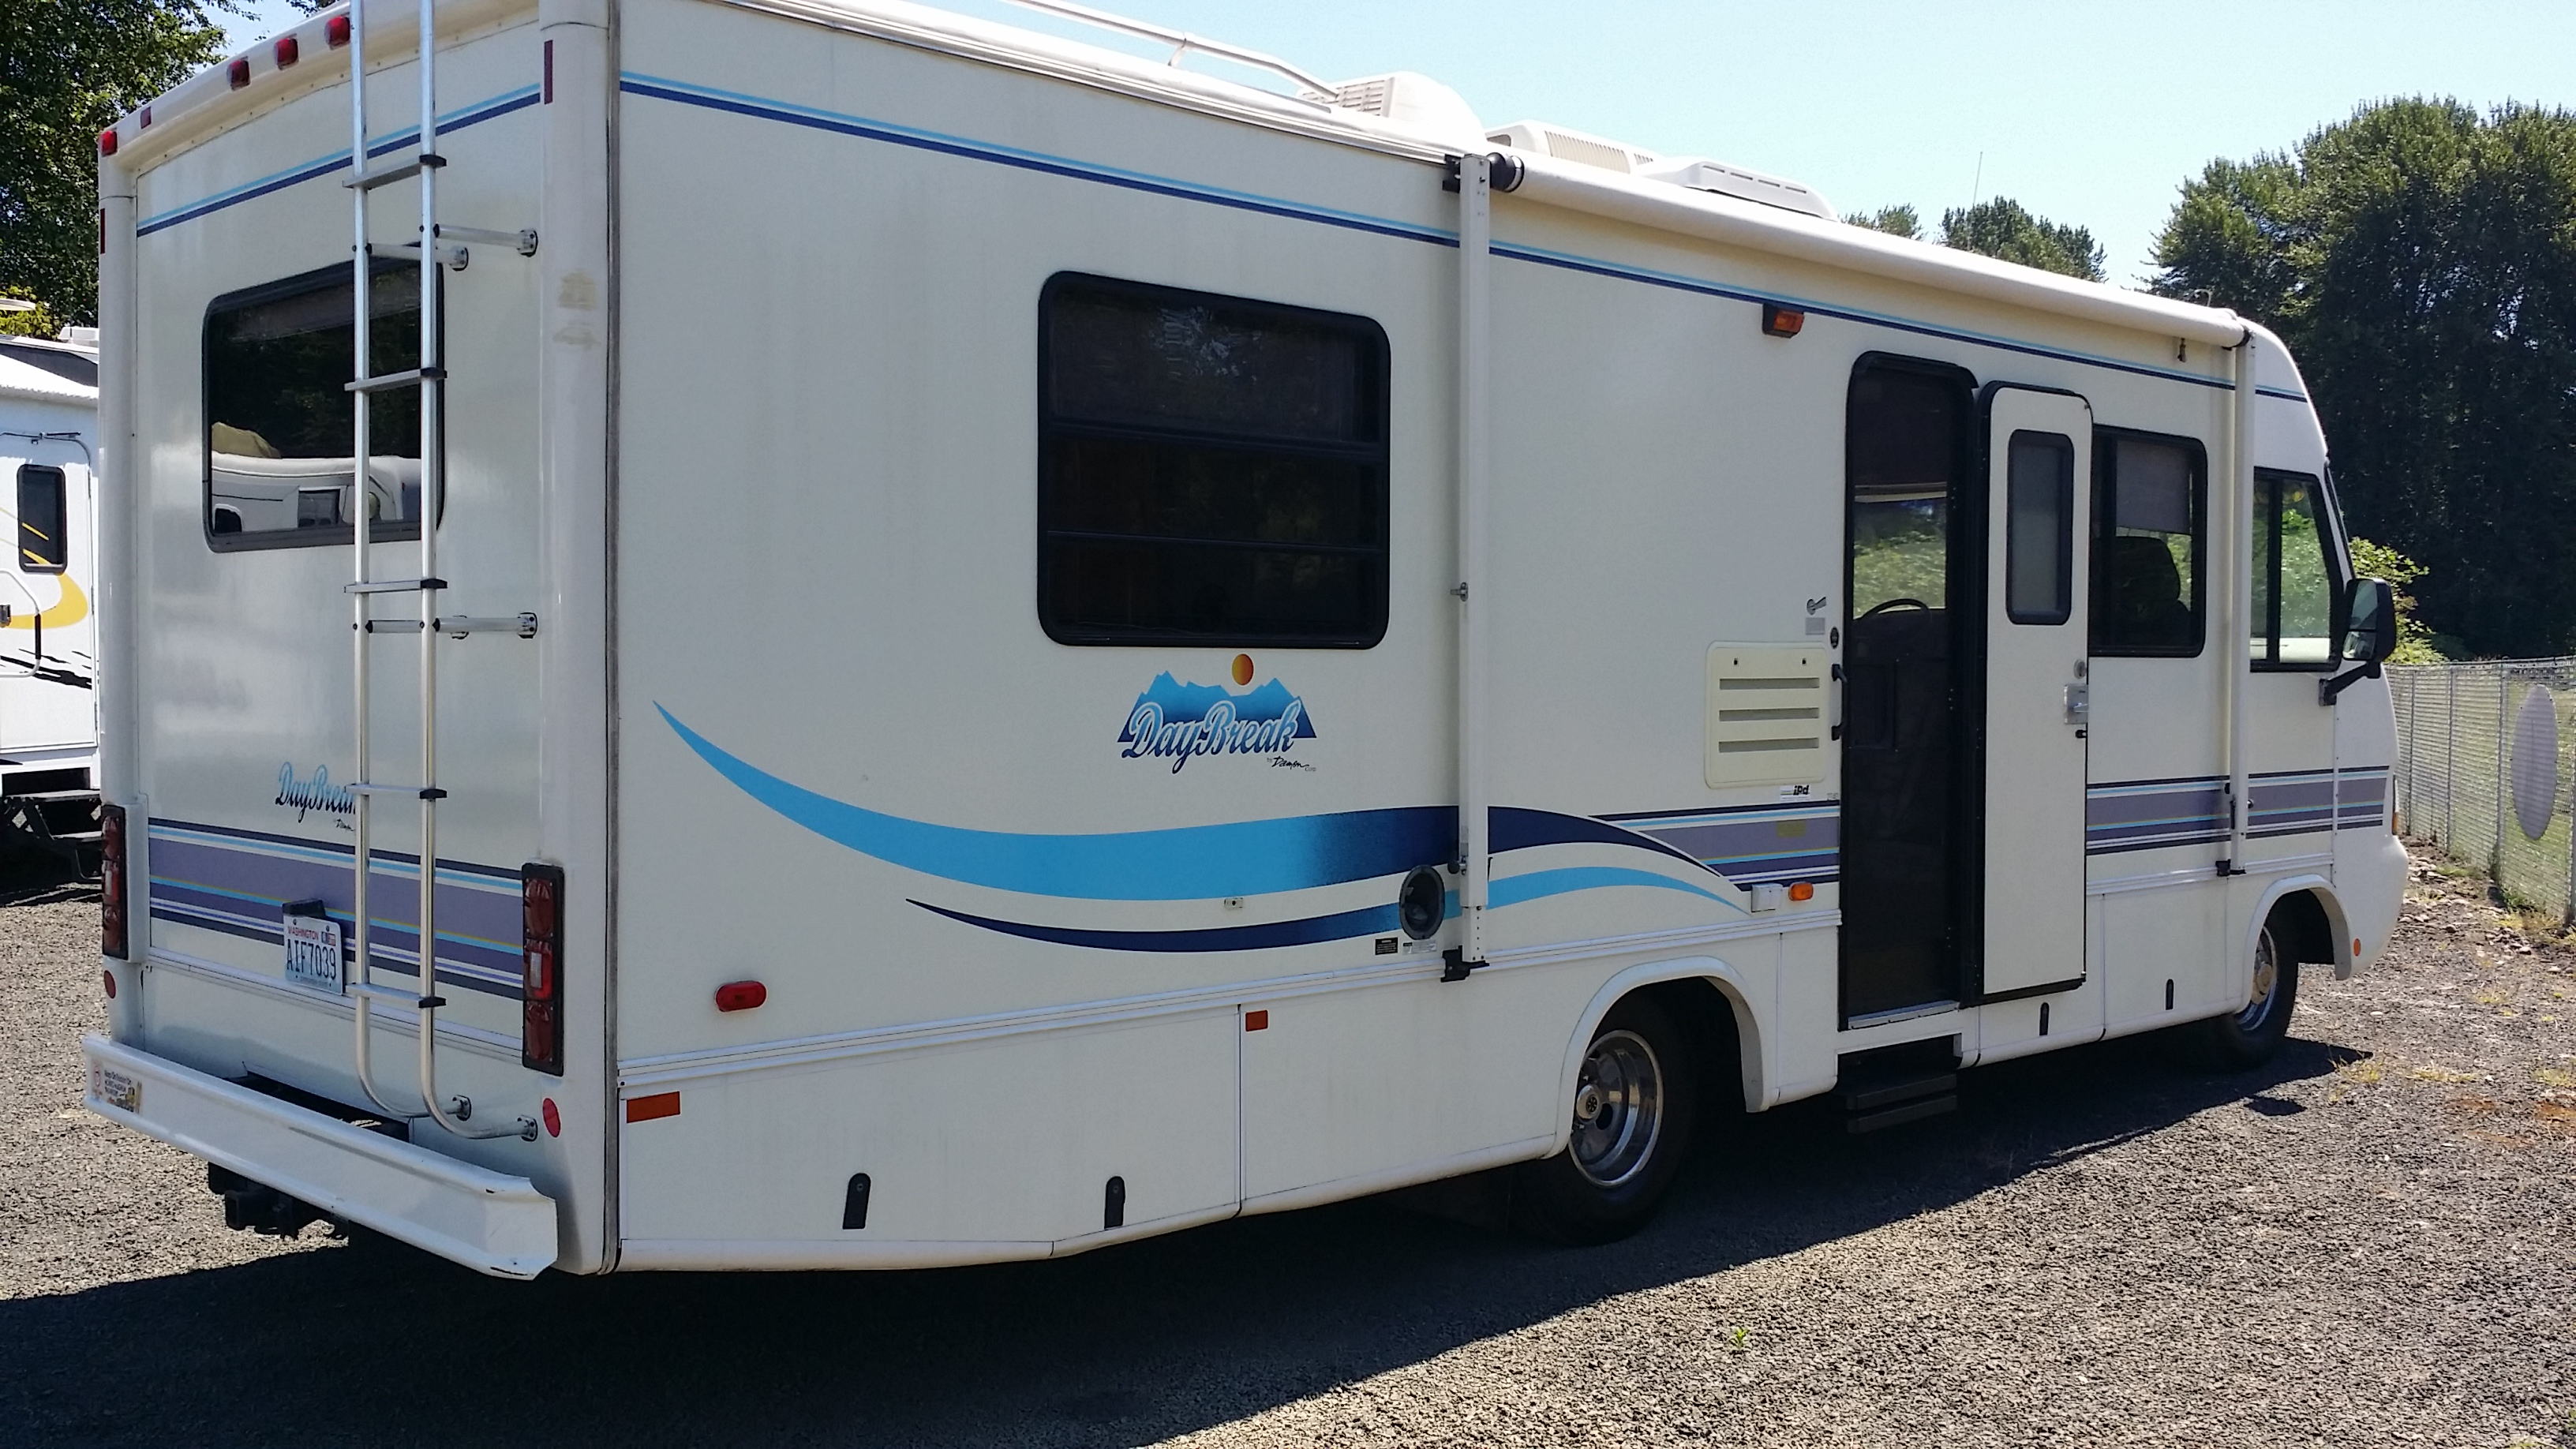 1996 damon daybreak motorhome,200,125,Longview,85 For Rent